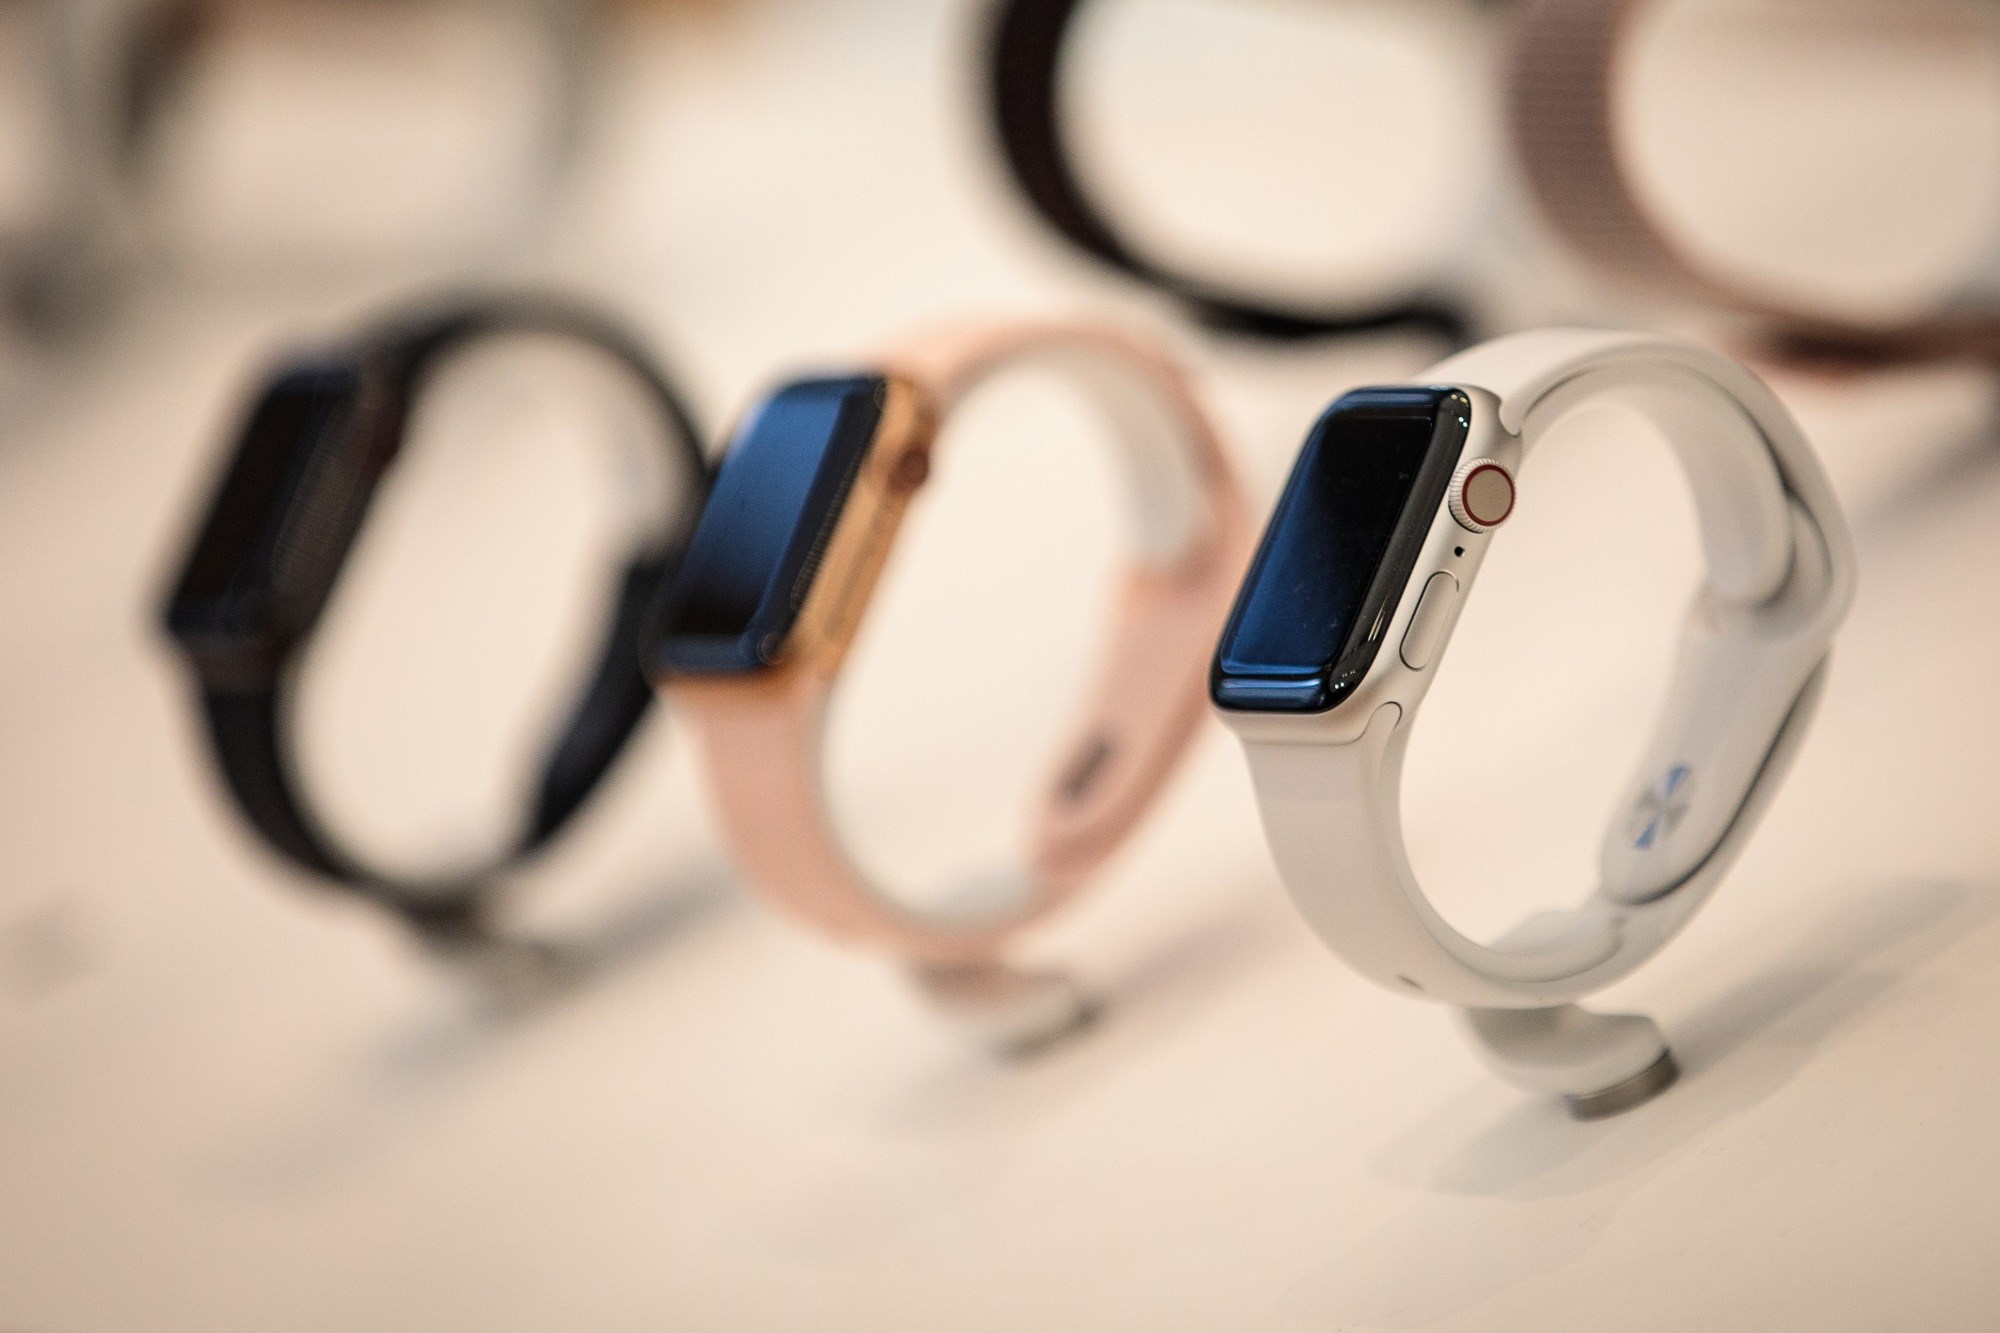 Heart to Heart: Cardiologists React to New Apple Watch Heart Monitoring Features